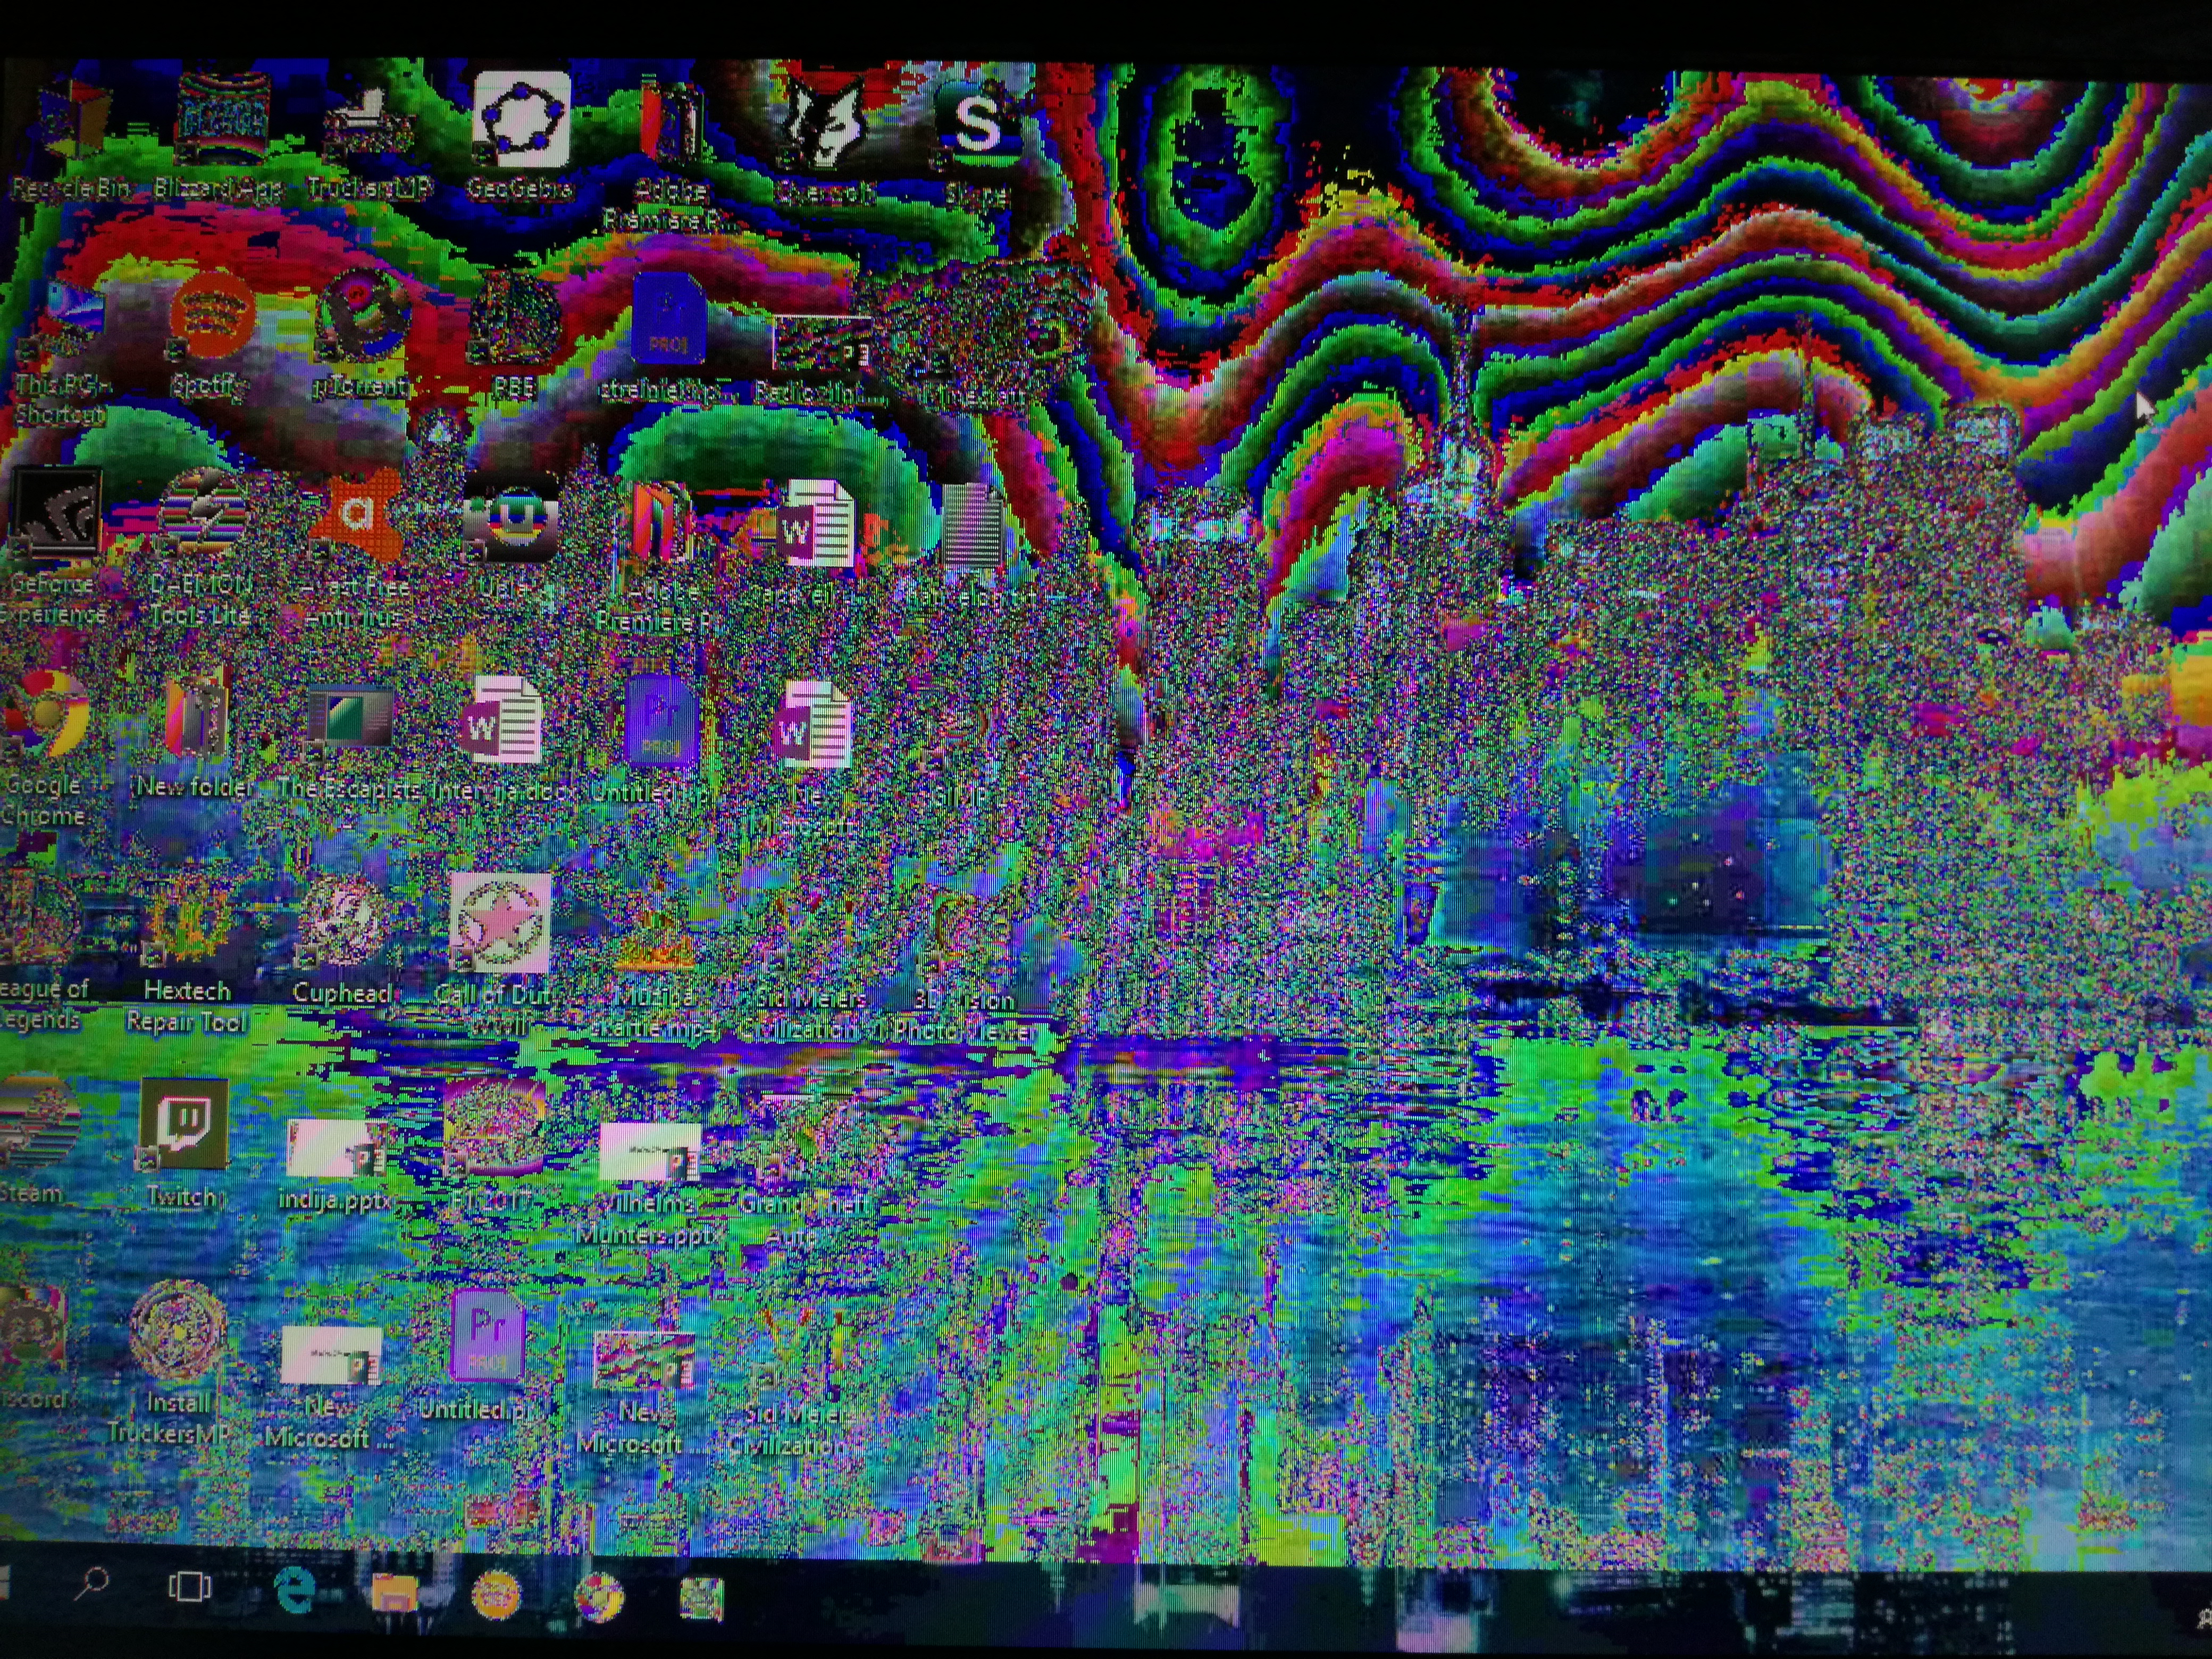 Windows 10 colors messed up after update  - Microsoft Community